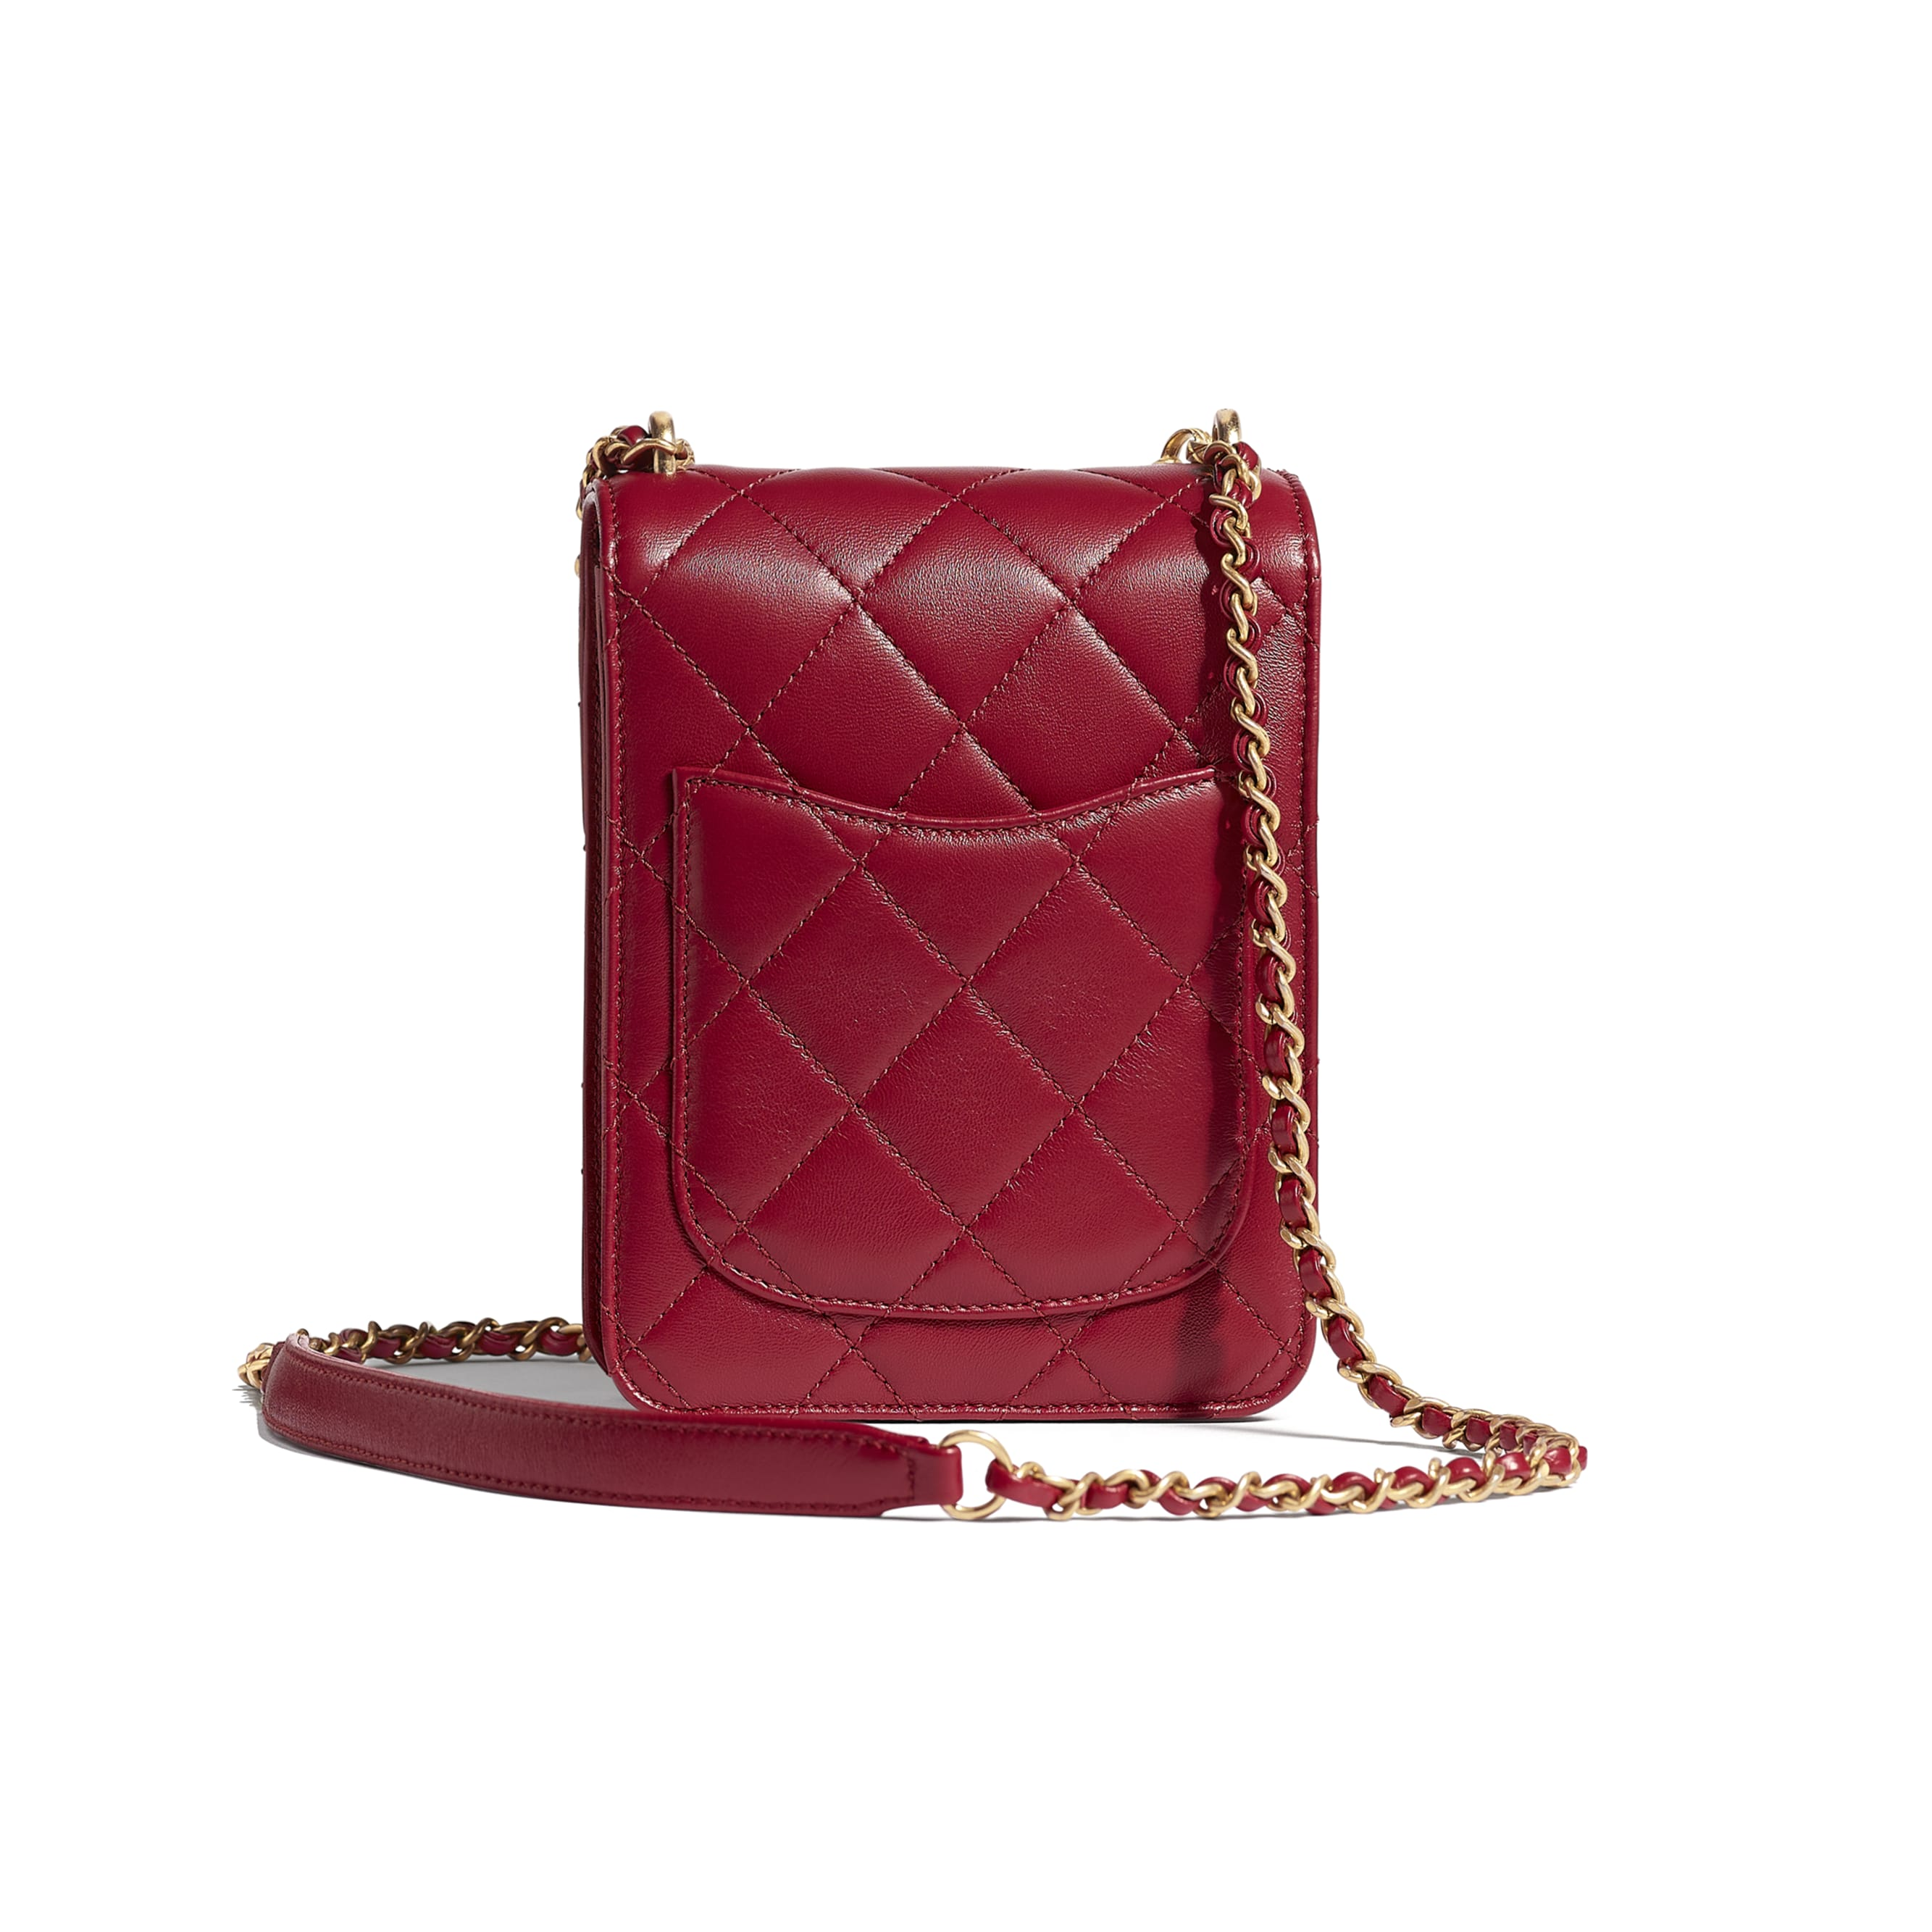 Flap Bag - Fuchsia - Calfskin, Pearls, Amethyst, Quartz & Gold-Tone Metal - CHANEL - Alternative view - see standard sized version